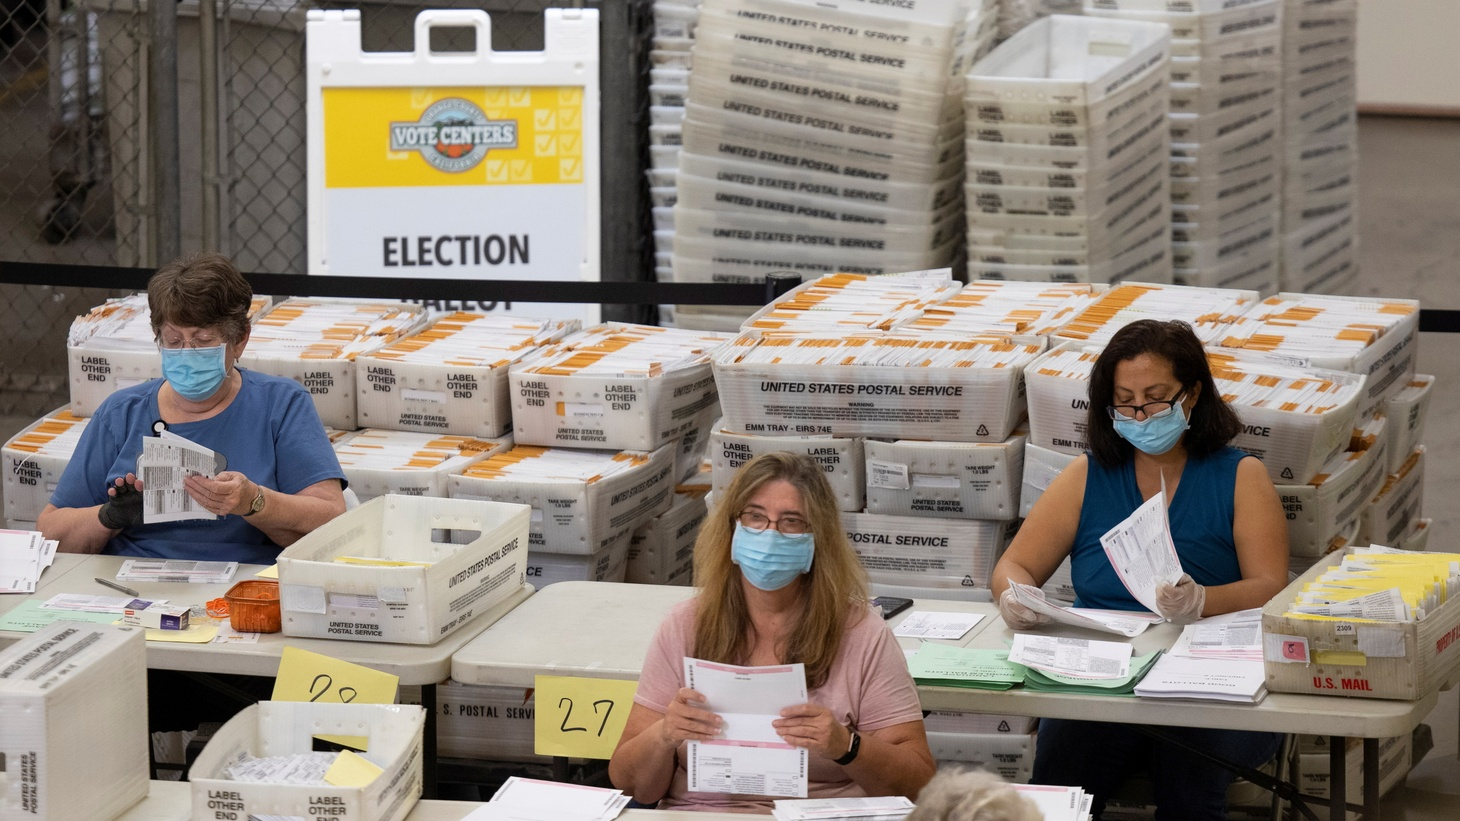 Election workers sort through some of the thousands of mail-in ballots at the Orange County Registrar of Voters in Santa Ana, California, U.S., November 2, 2020.